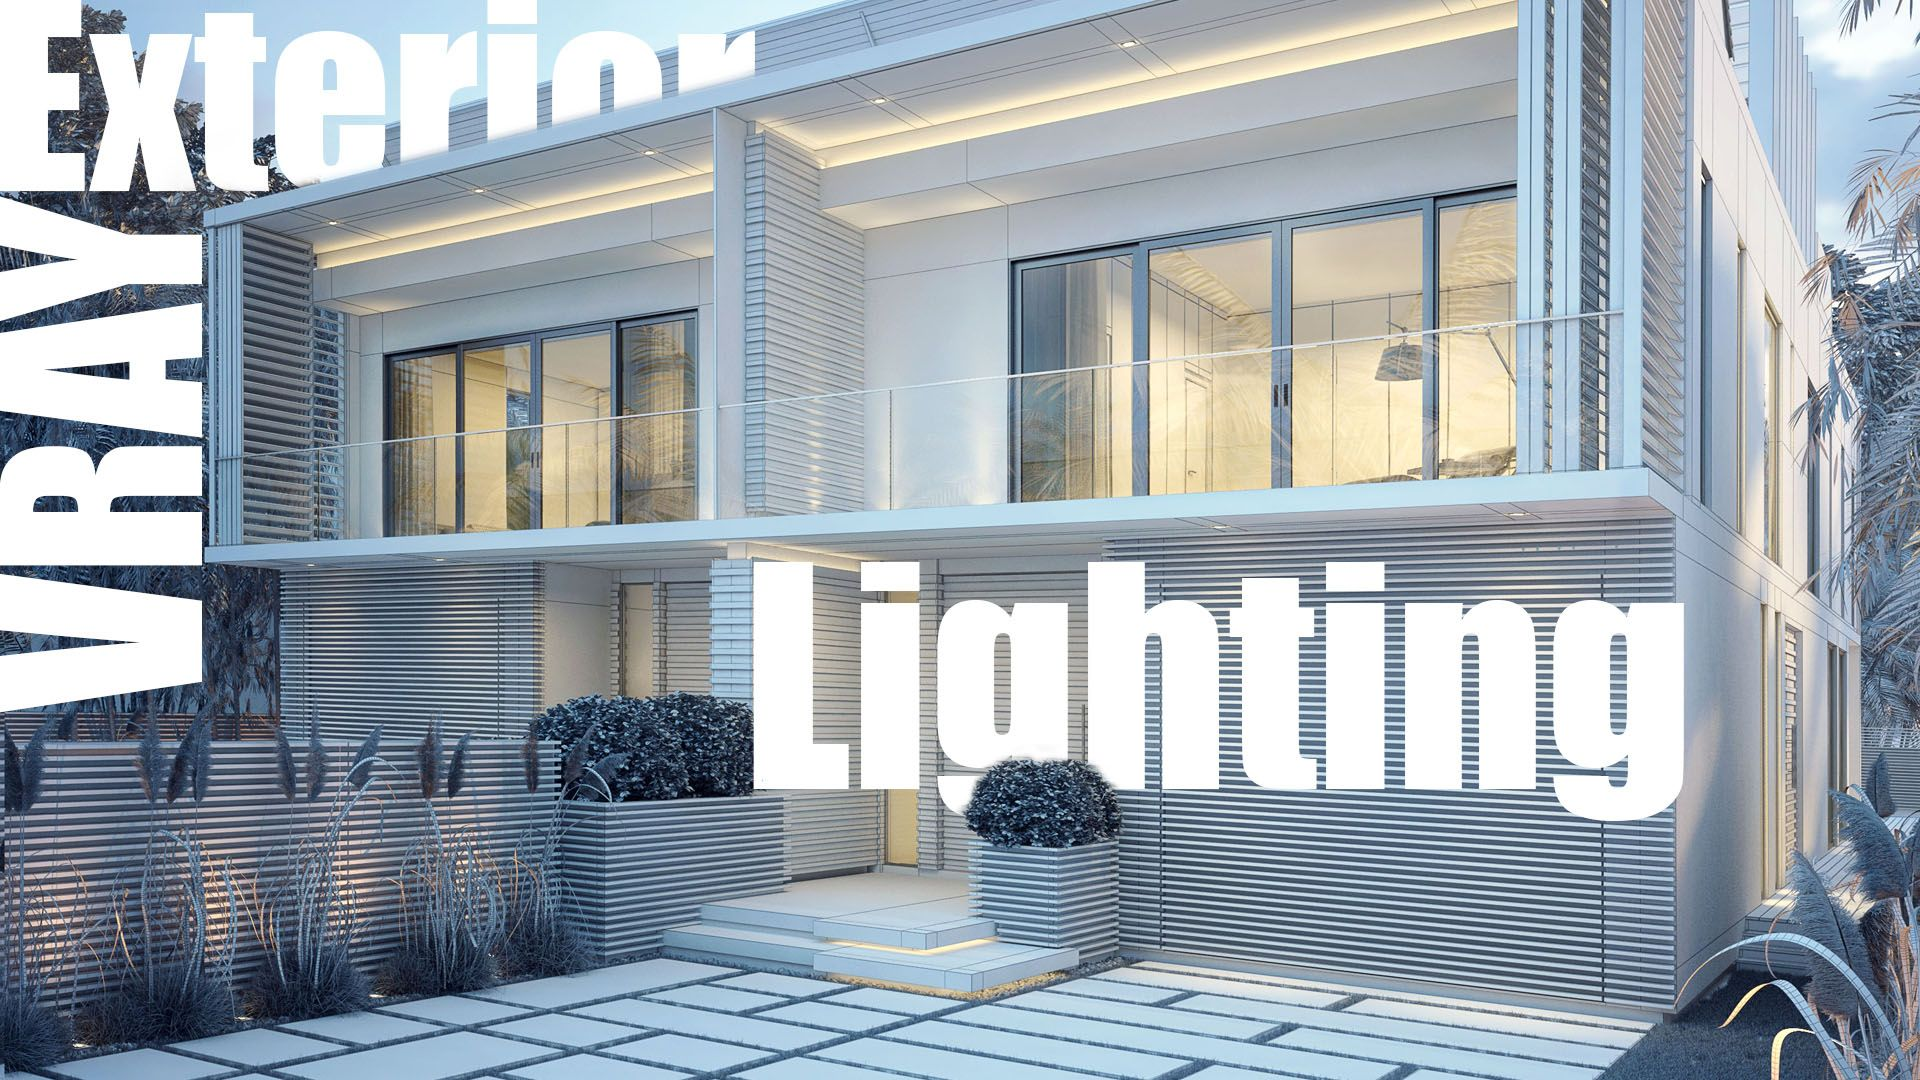 Vray exterior lighting & rendering video tutorial vray